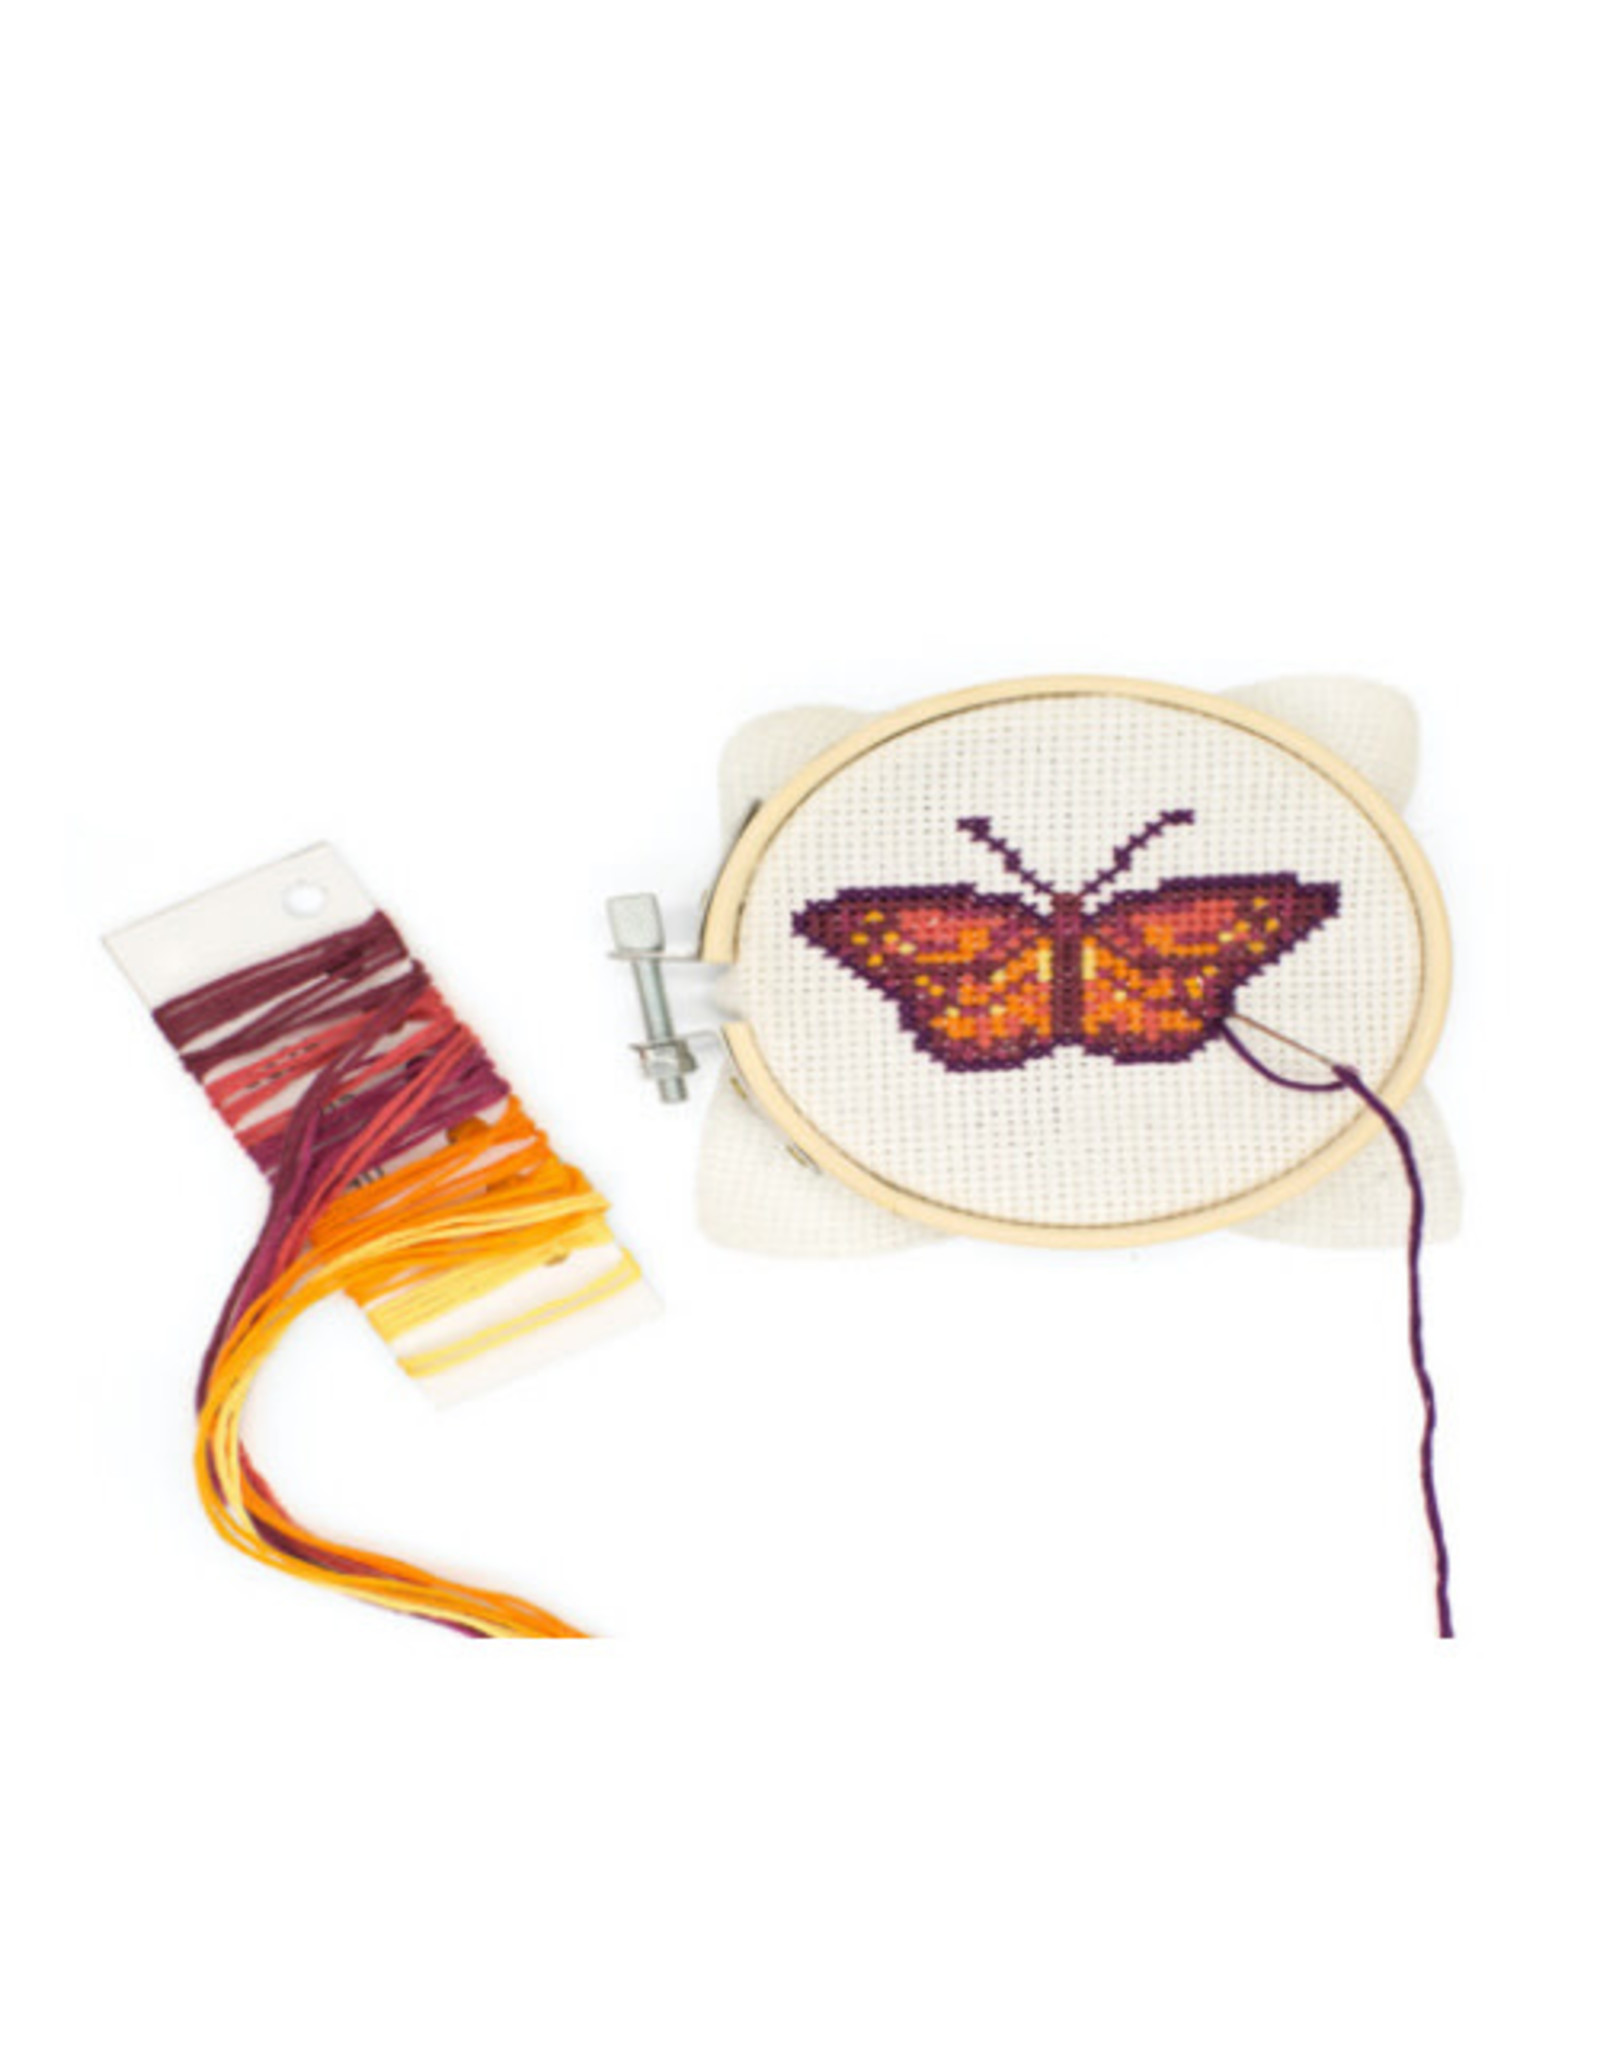 KND - Butterfly Cross Stitch Embroidery Kit